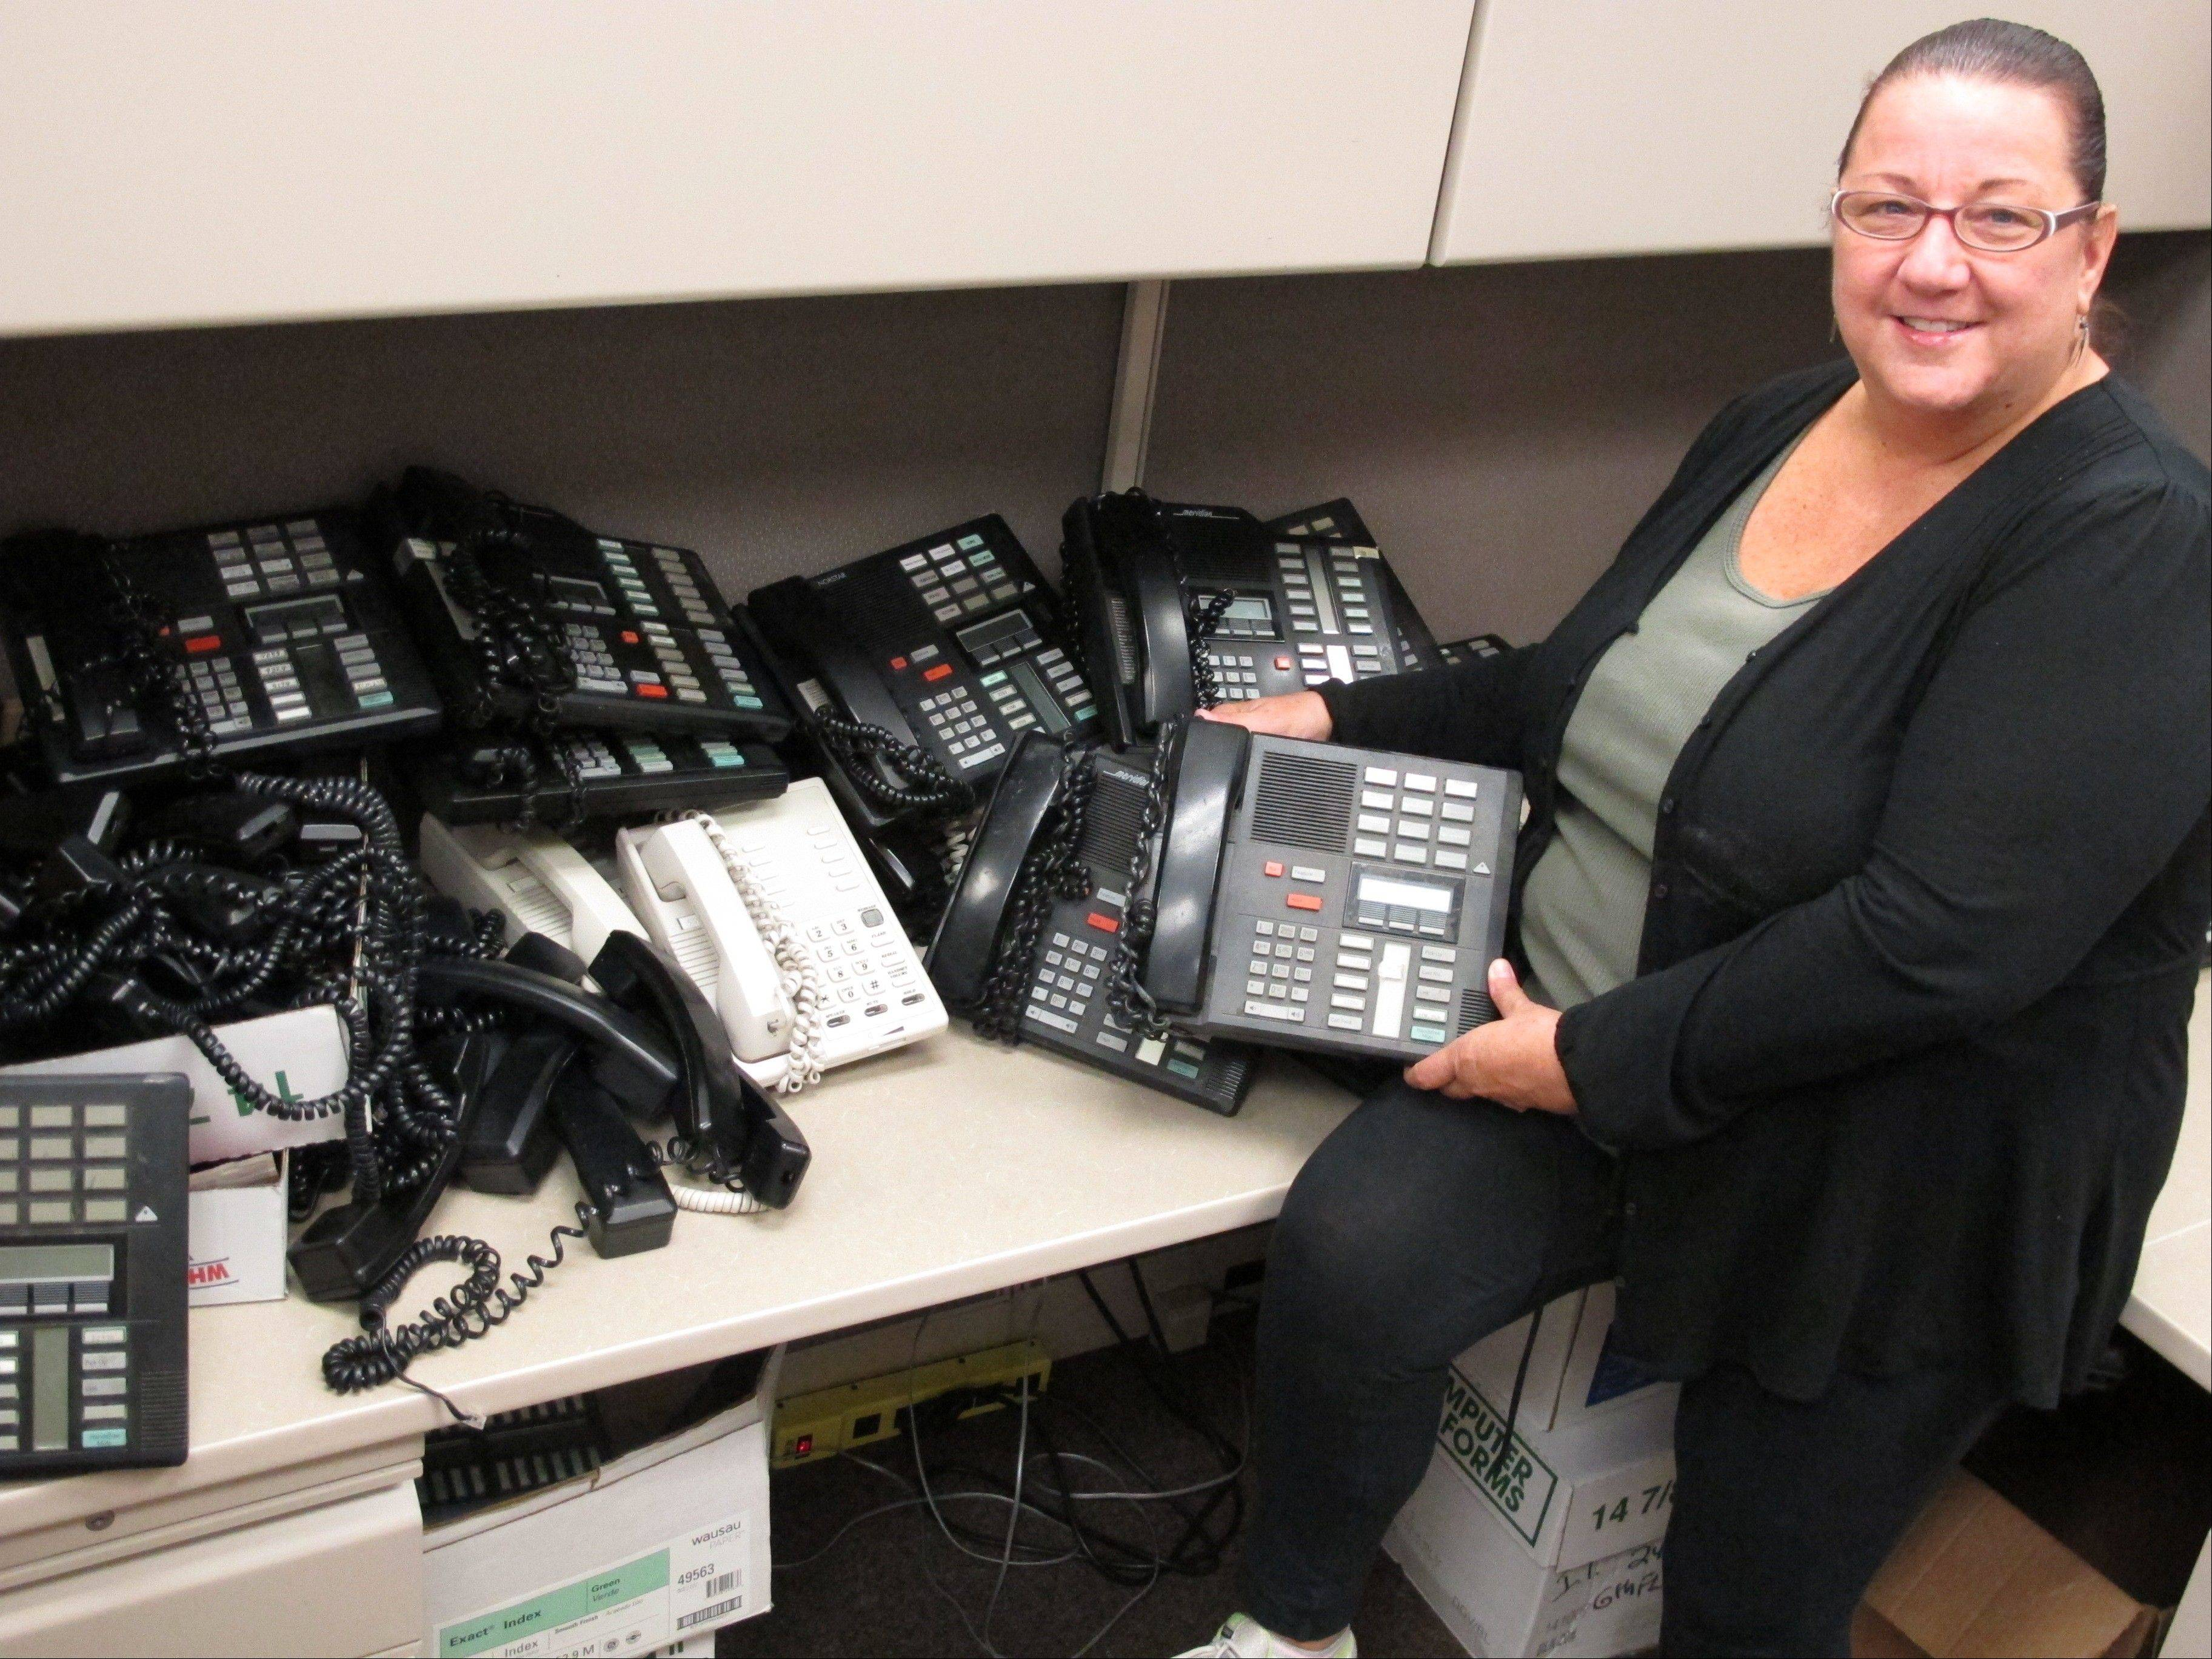 Mary Morgan, a Nassau County information technology specialist, poses with the telephones she is assessing as part of a countywide efficiency effort in Mineola, N.Y. Nassau County is currently shutting off hundreds of unused telephone lines and reviewing their current stock of telephones as part of a cost-cutting initiative.